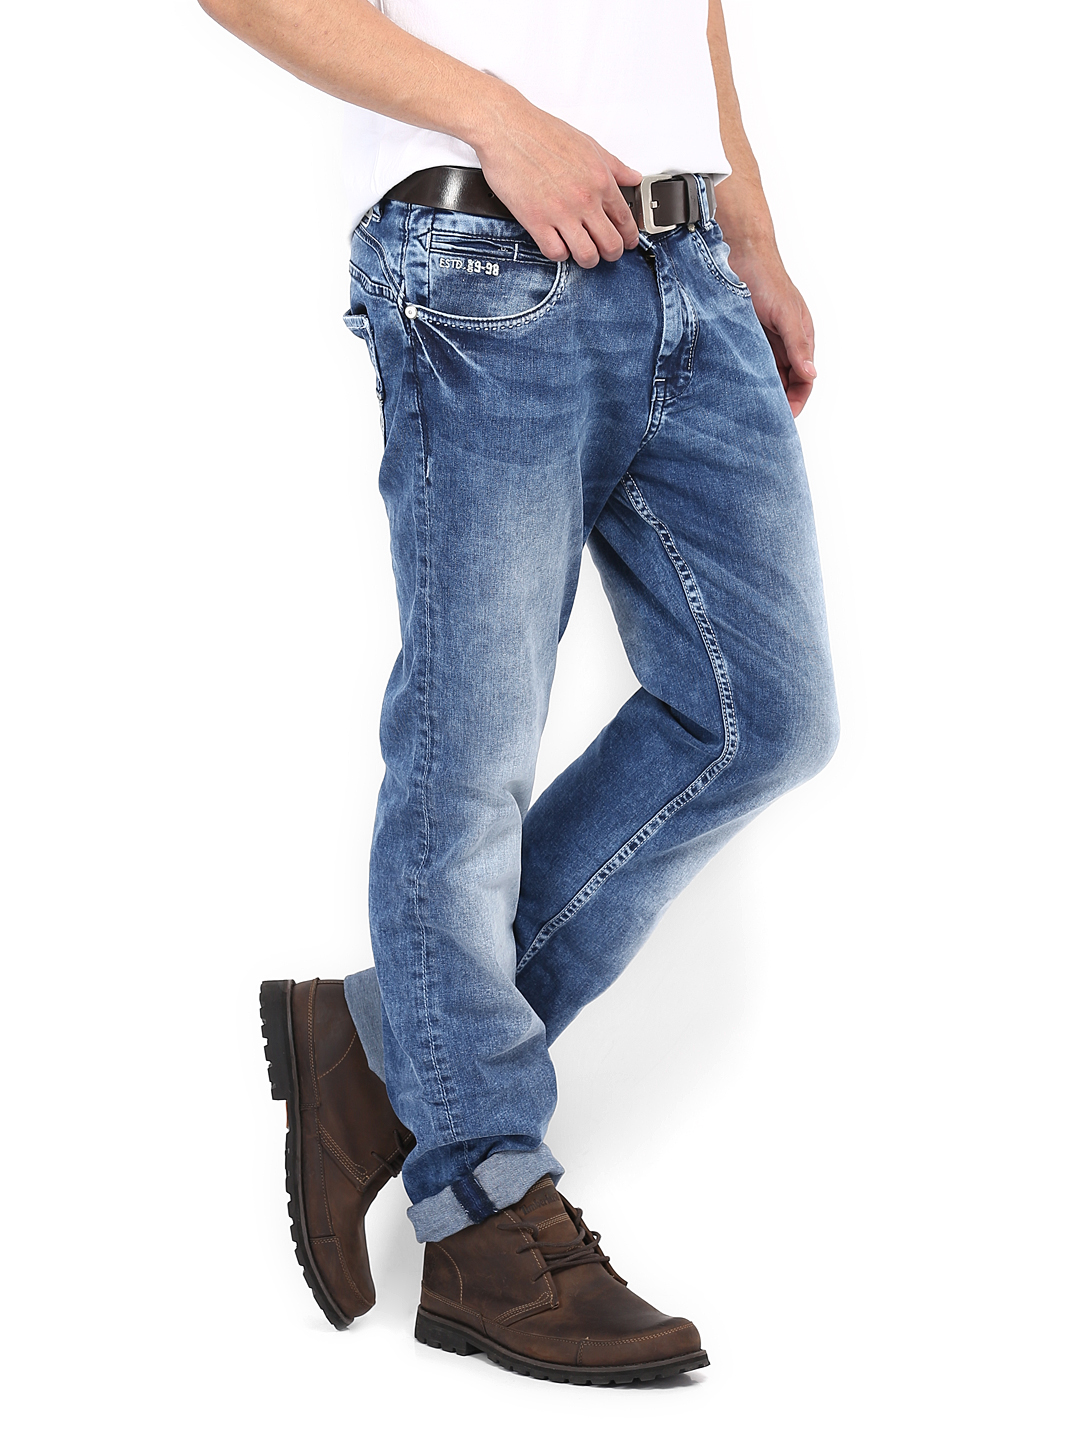 Myntra Mufti Blue Straight Fit Jeans 399637 | Buy Myntra Mufti Jeans at best price online. All ...